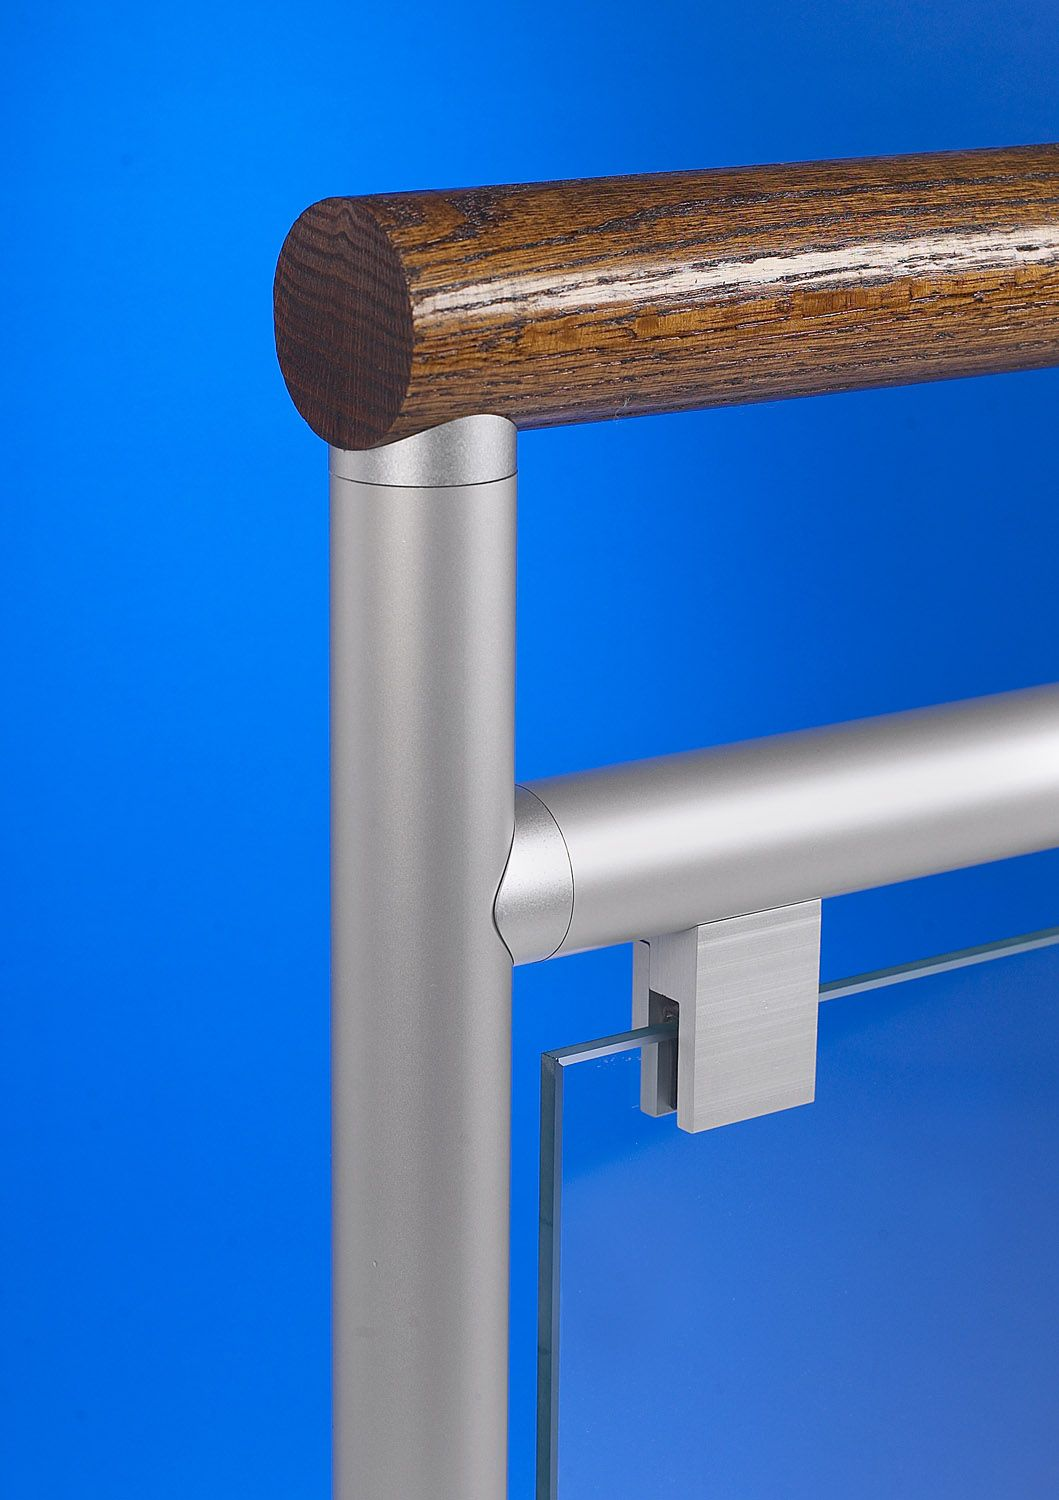 Glass Infill Photo Gallery: Interna-Rail Wood Top Rail Railing Systems With Glass Infill